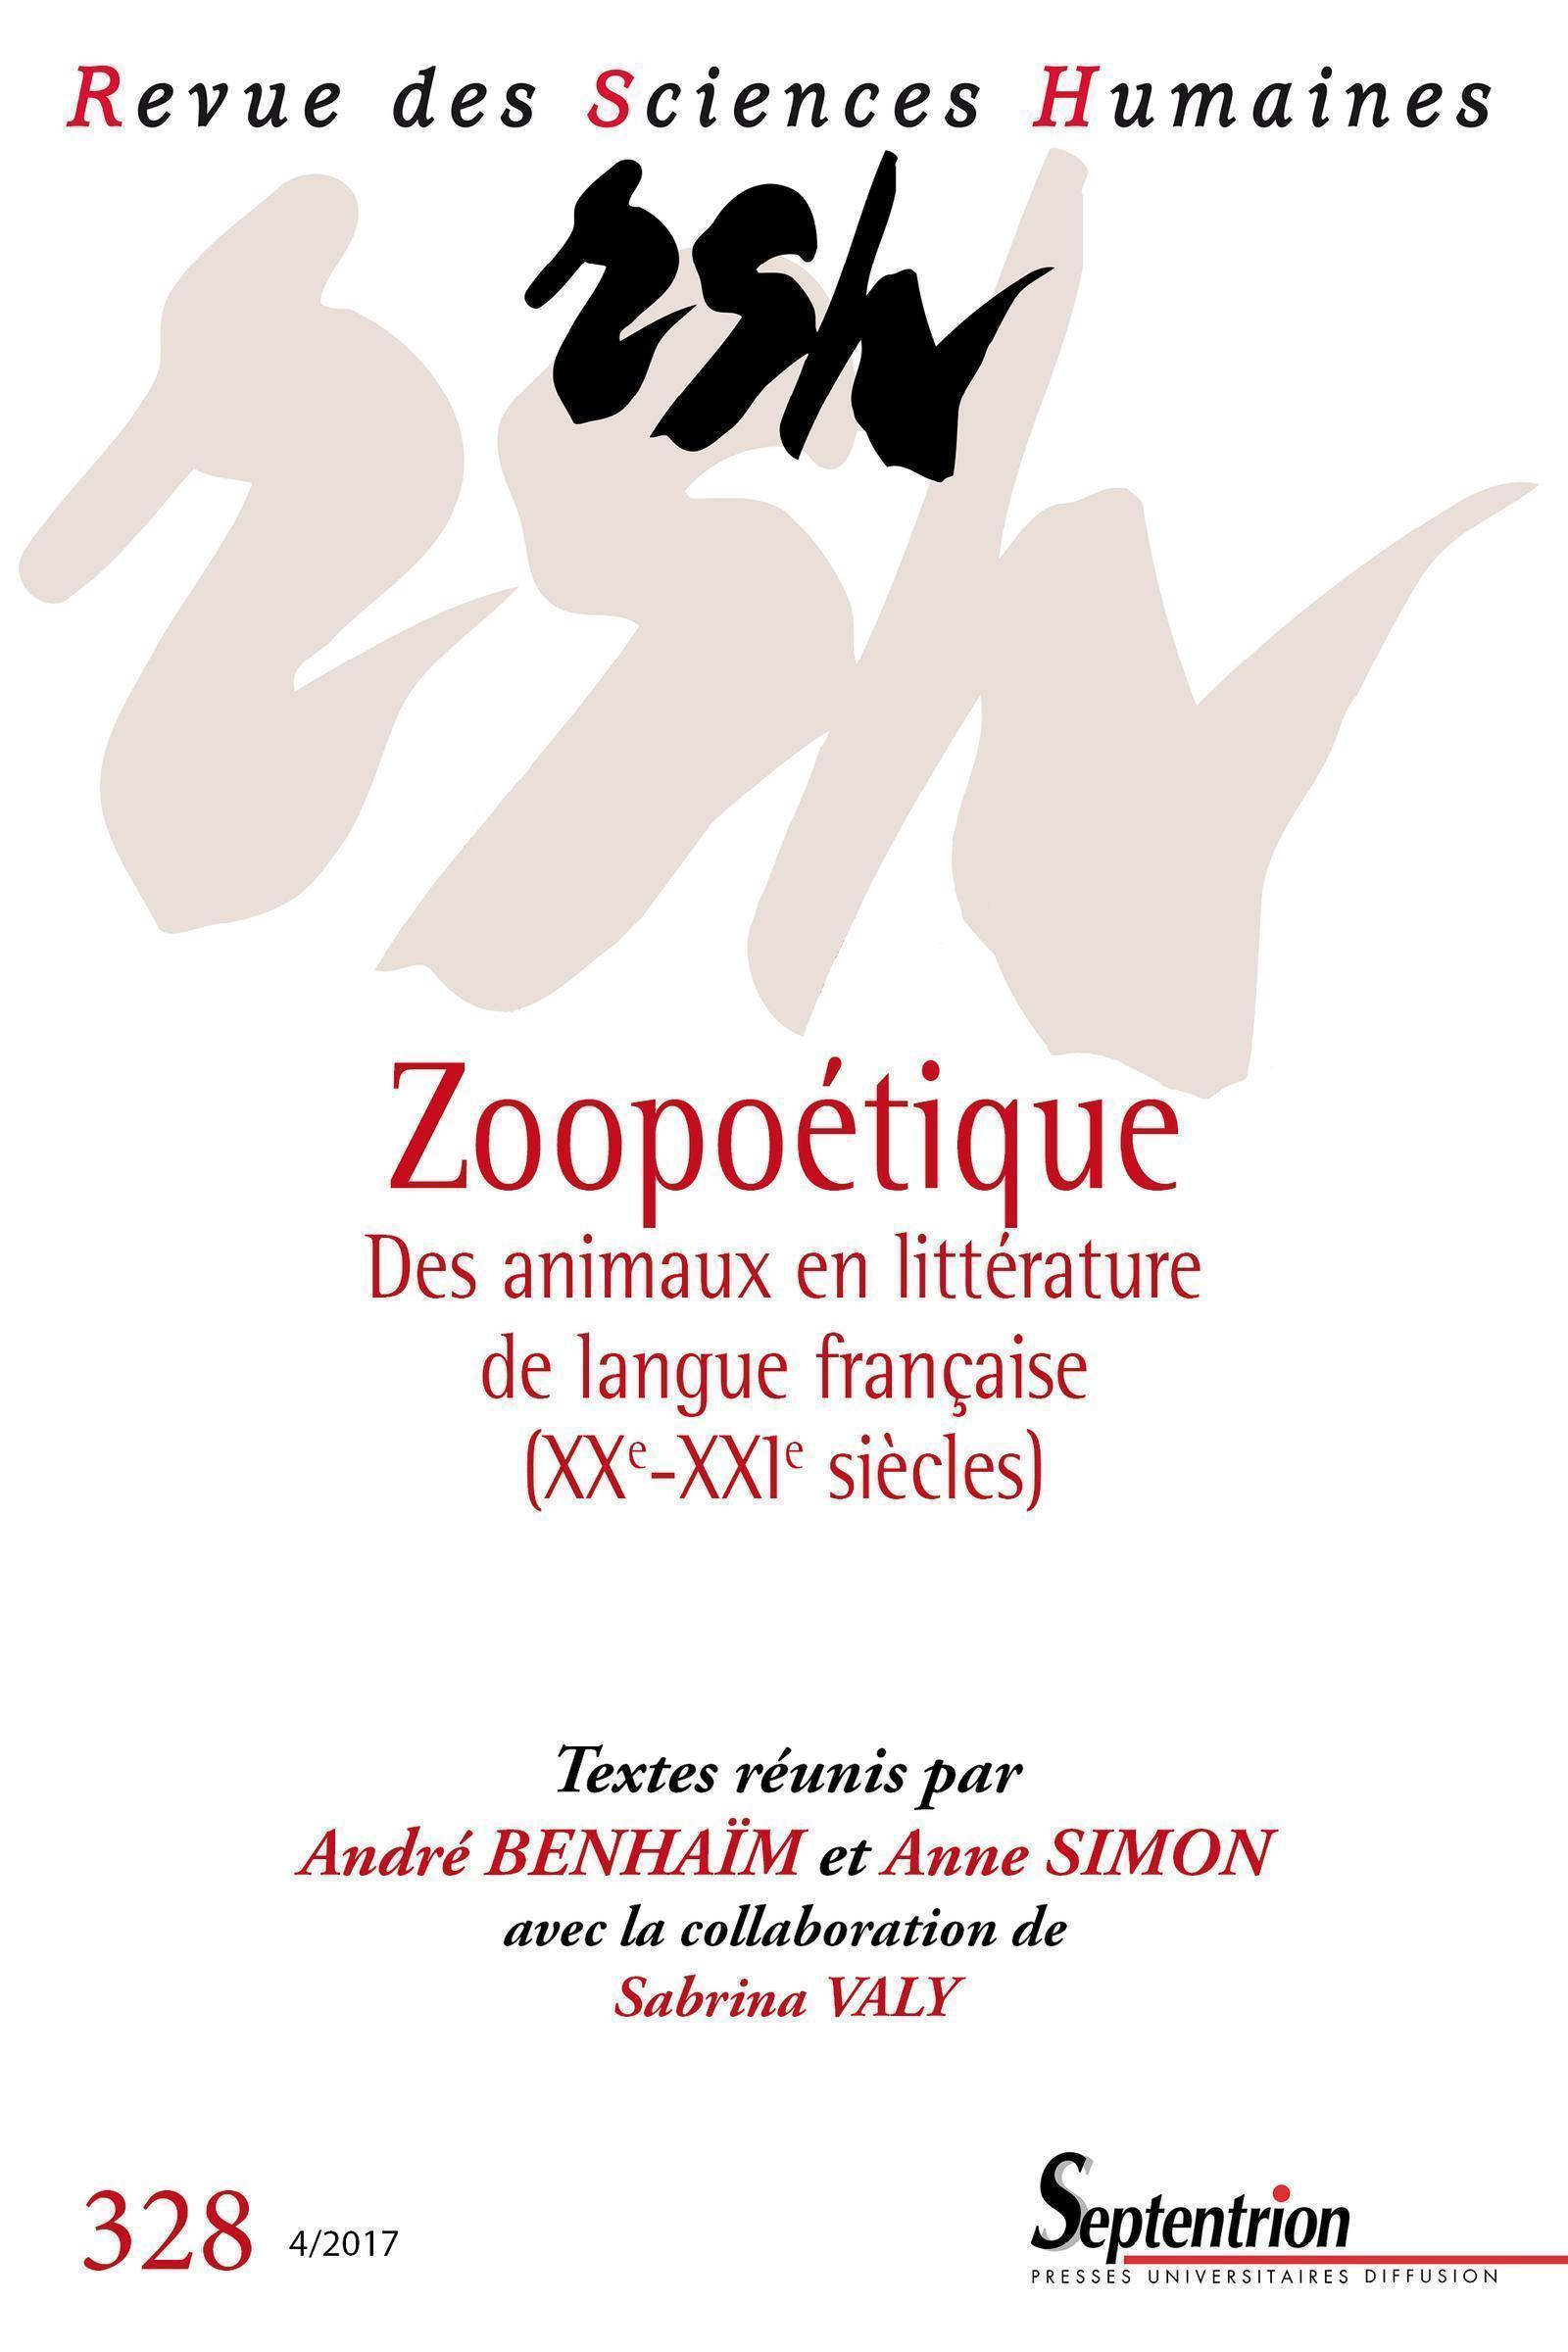 ZOOPOETIQUE - N328 4 2017 DES ANIMAUX EN LITTERATURE MODERNE DE LANGUE FRANCAISE